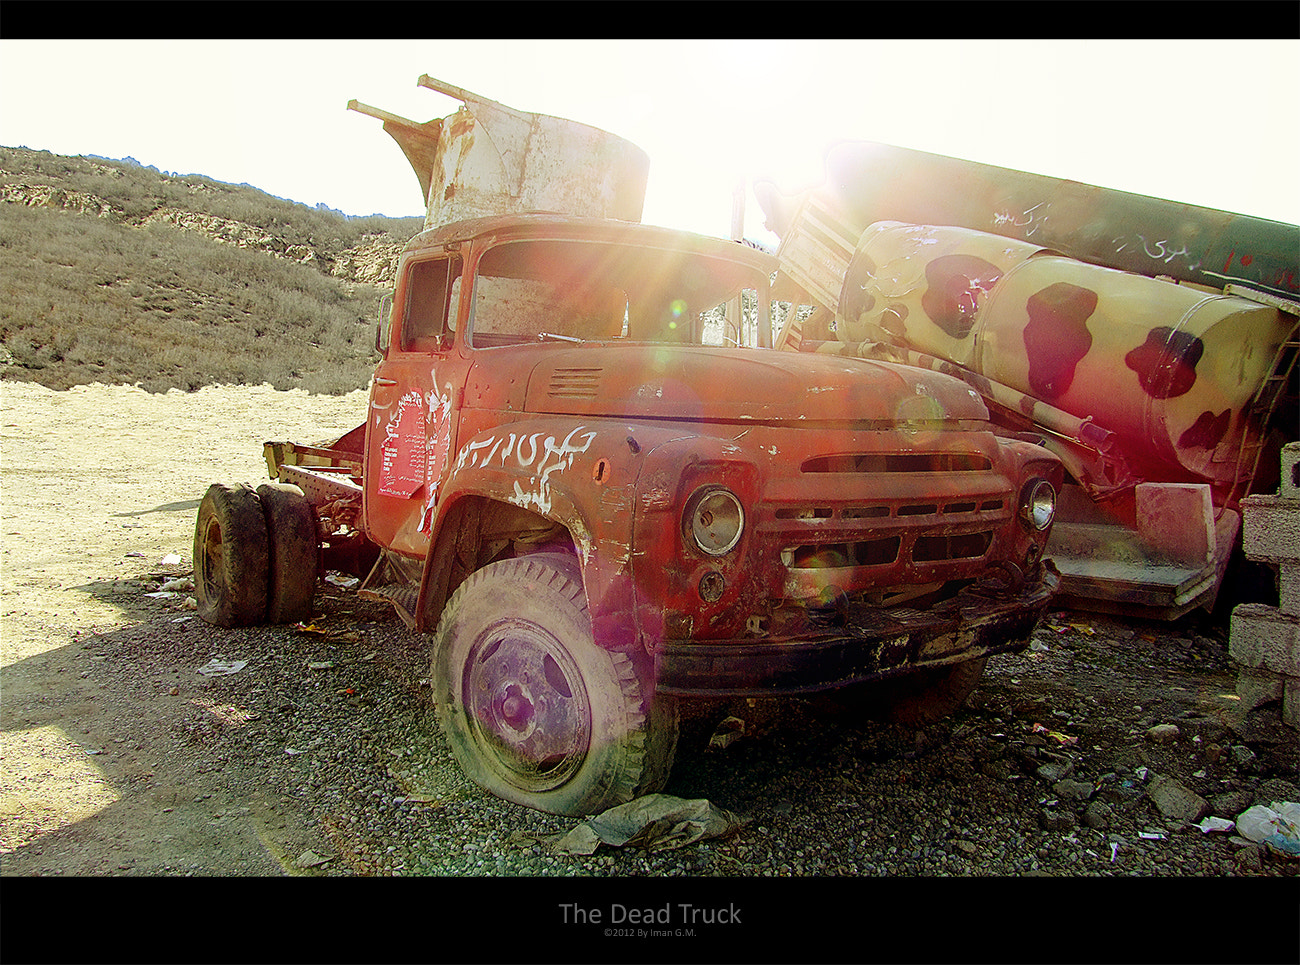 Photograph The Dead Truck by Iman GM on 500px